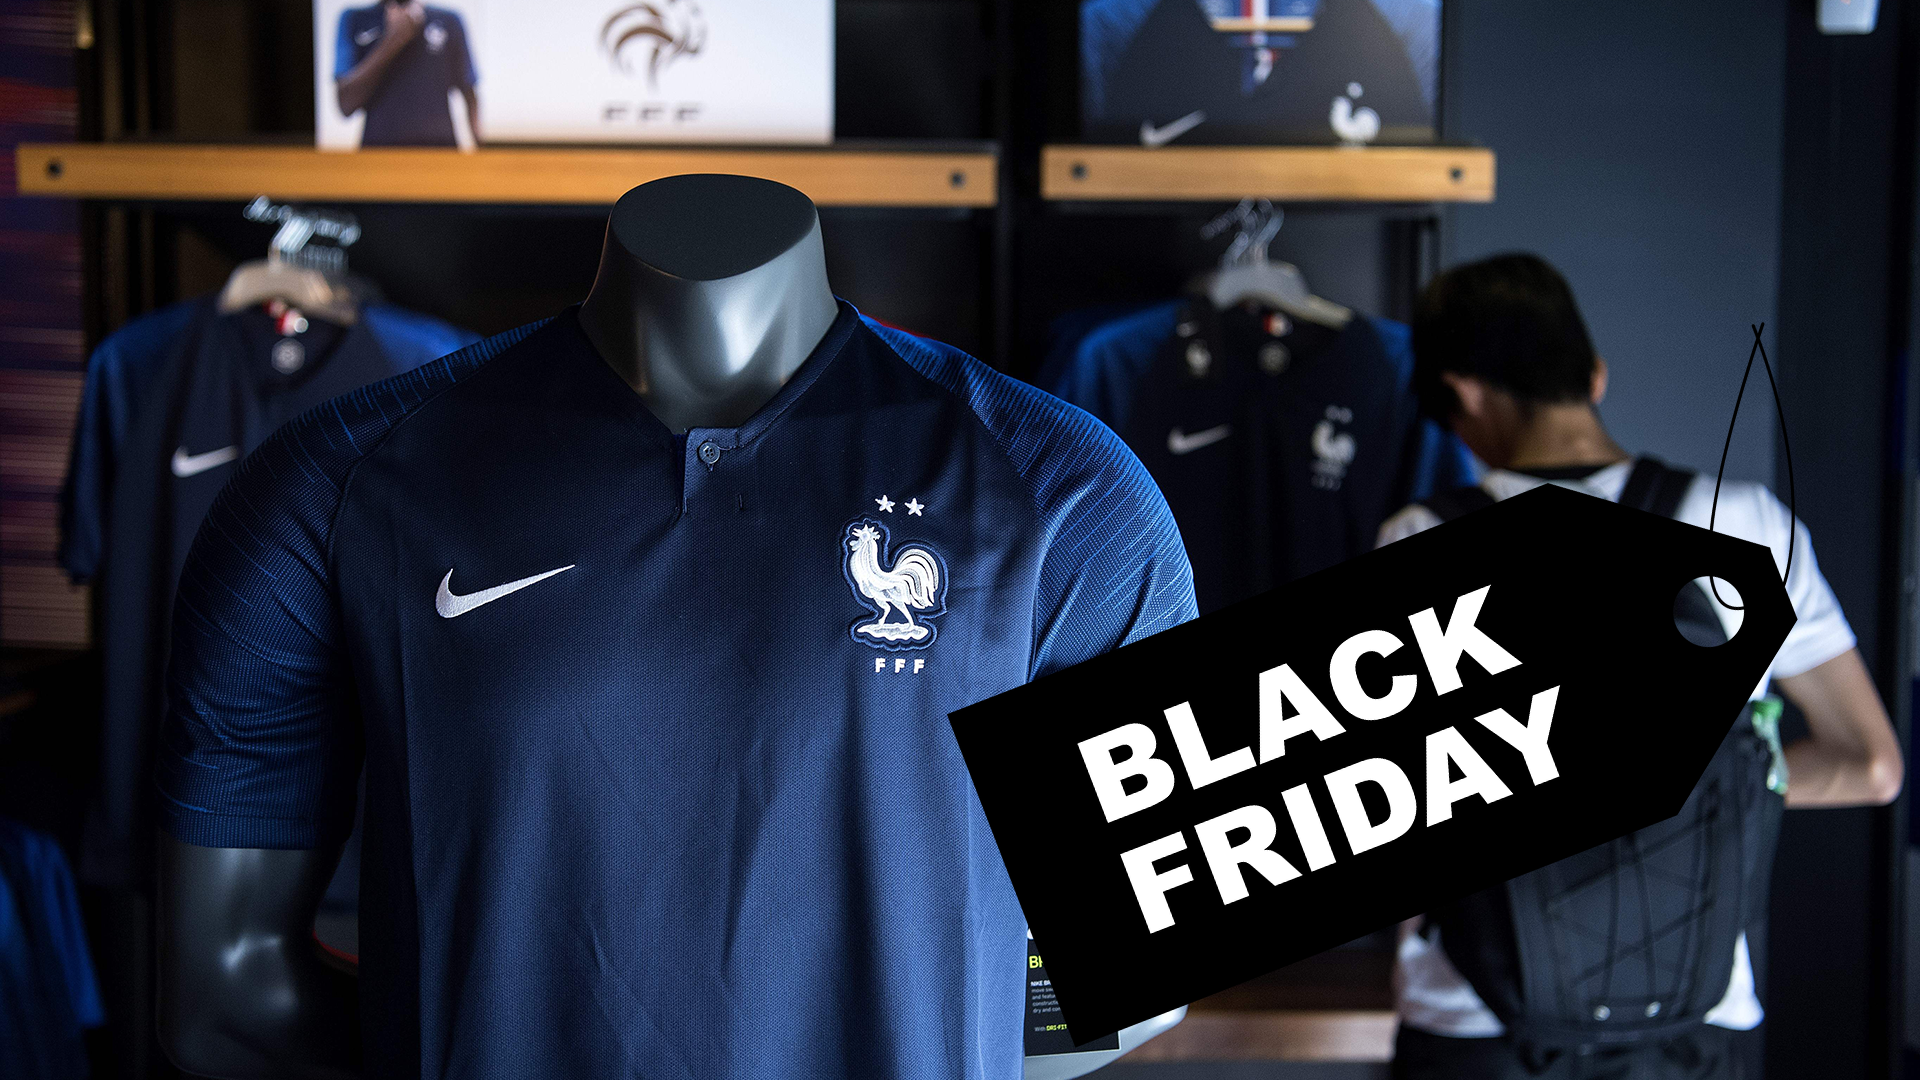 Black Friday Best deals and discounts for soccer jerseys